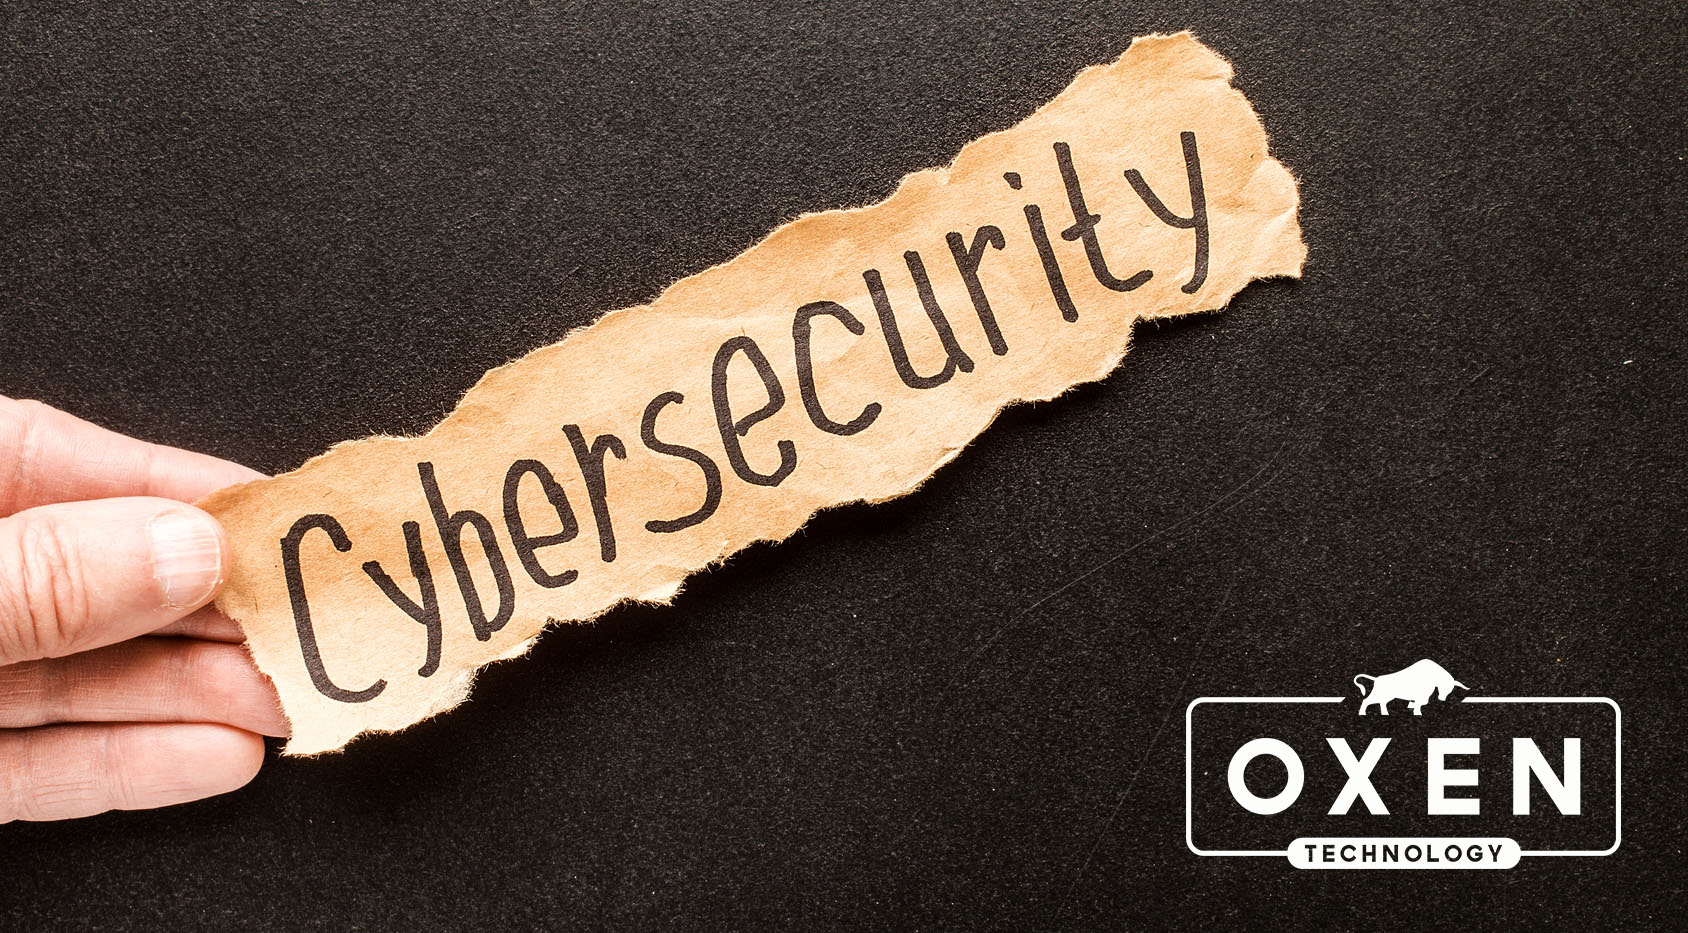 Q1 2017 Cybersecurity Update from OXEN Technology